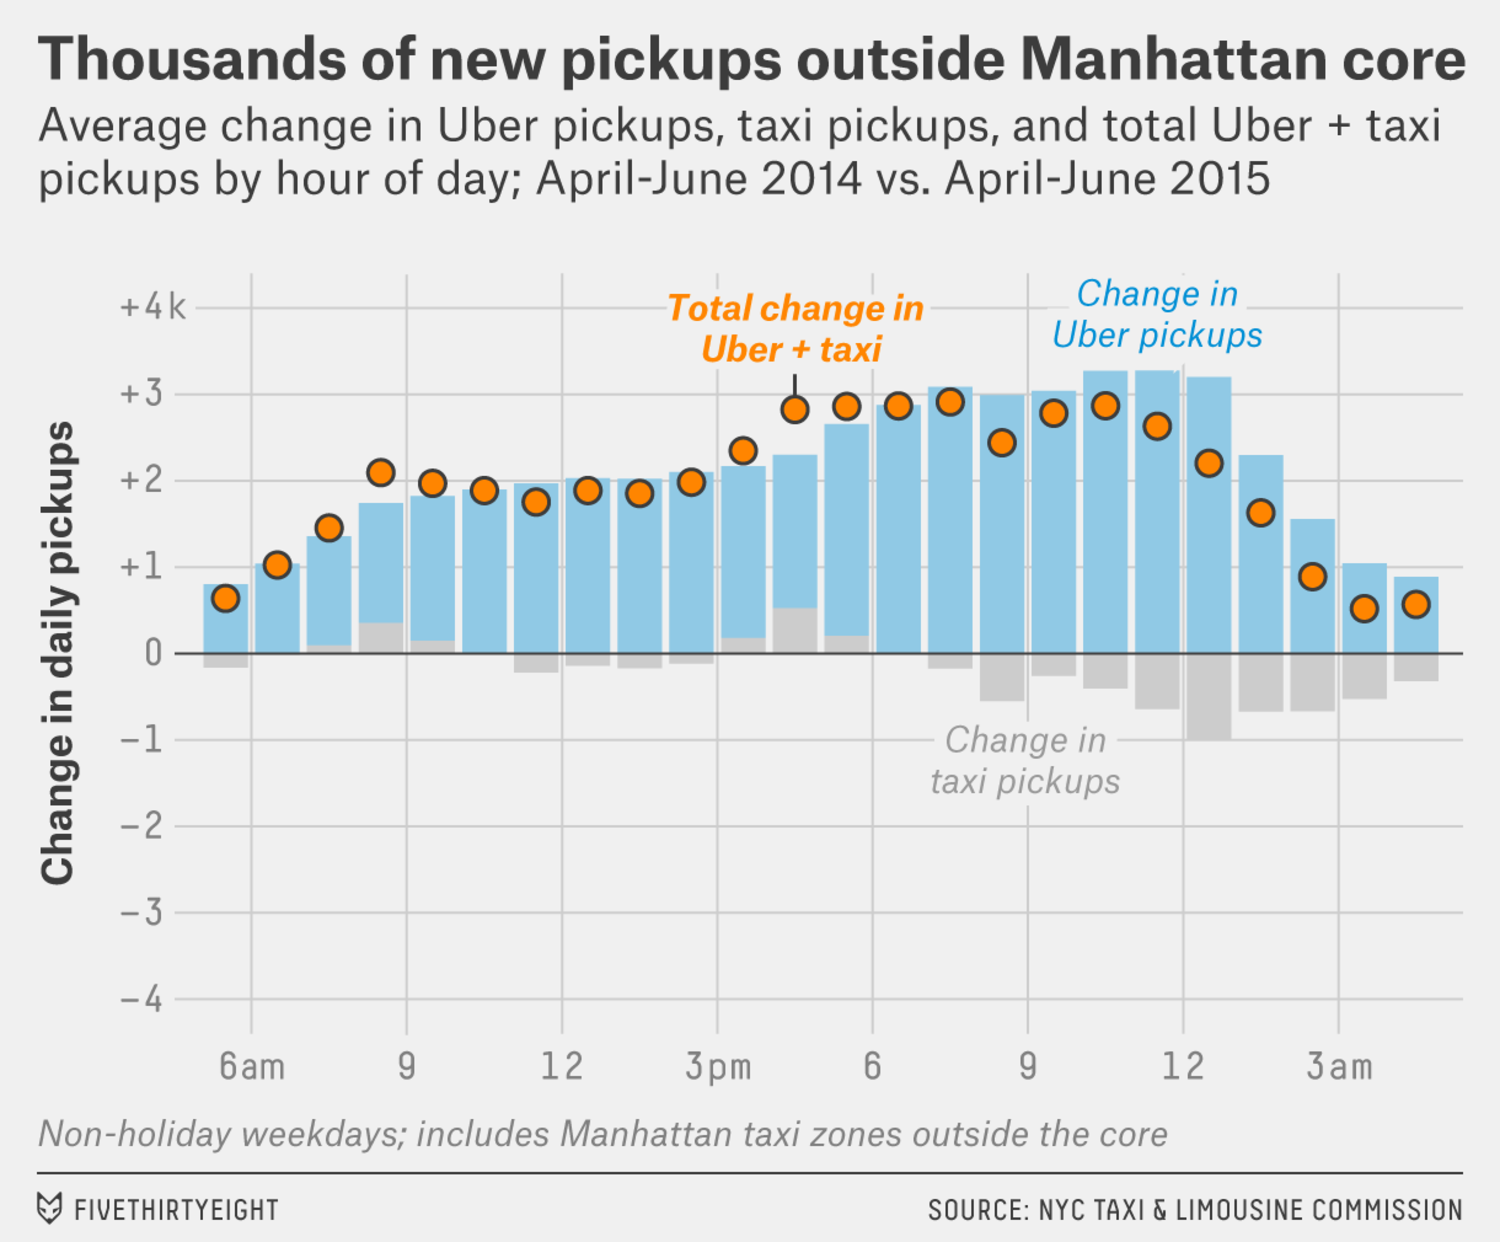 Thousands of new pickups outside Manhattan core